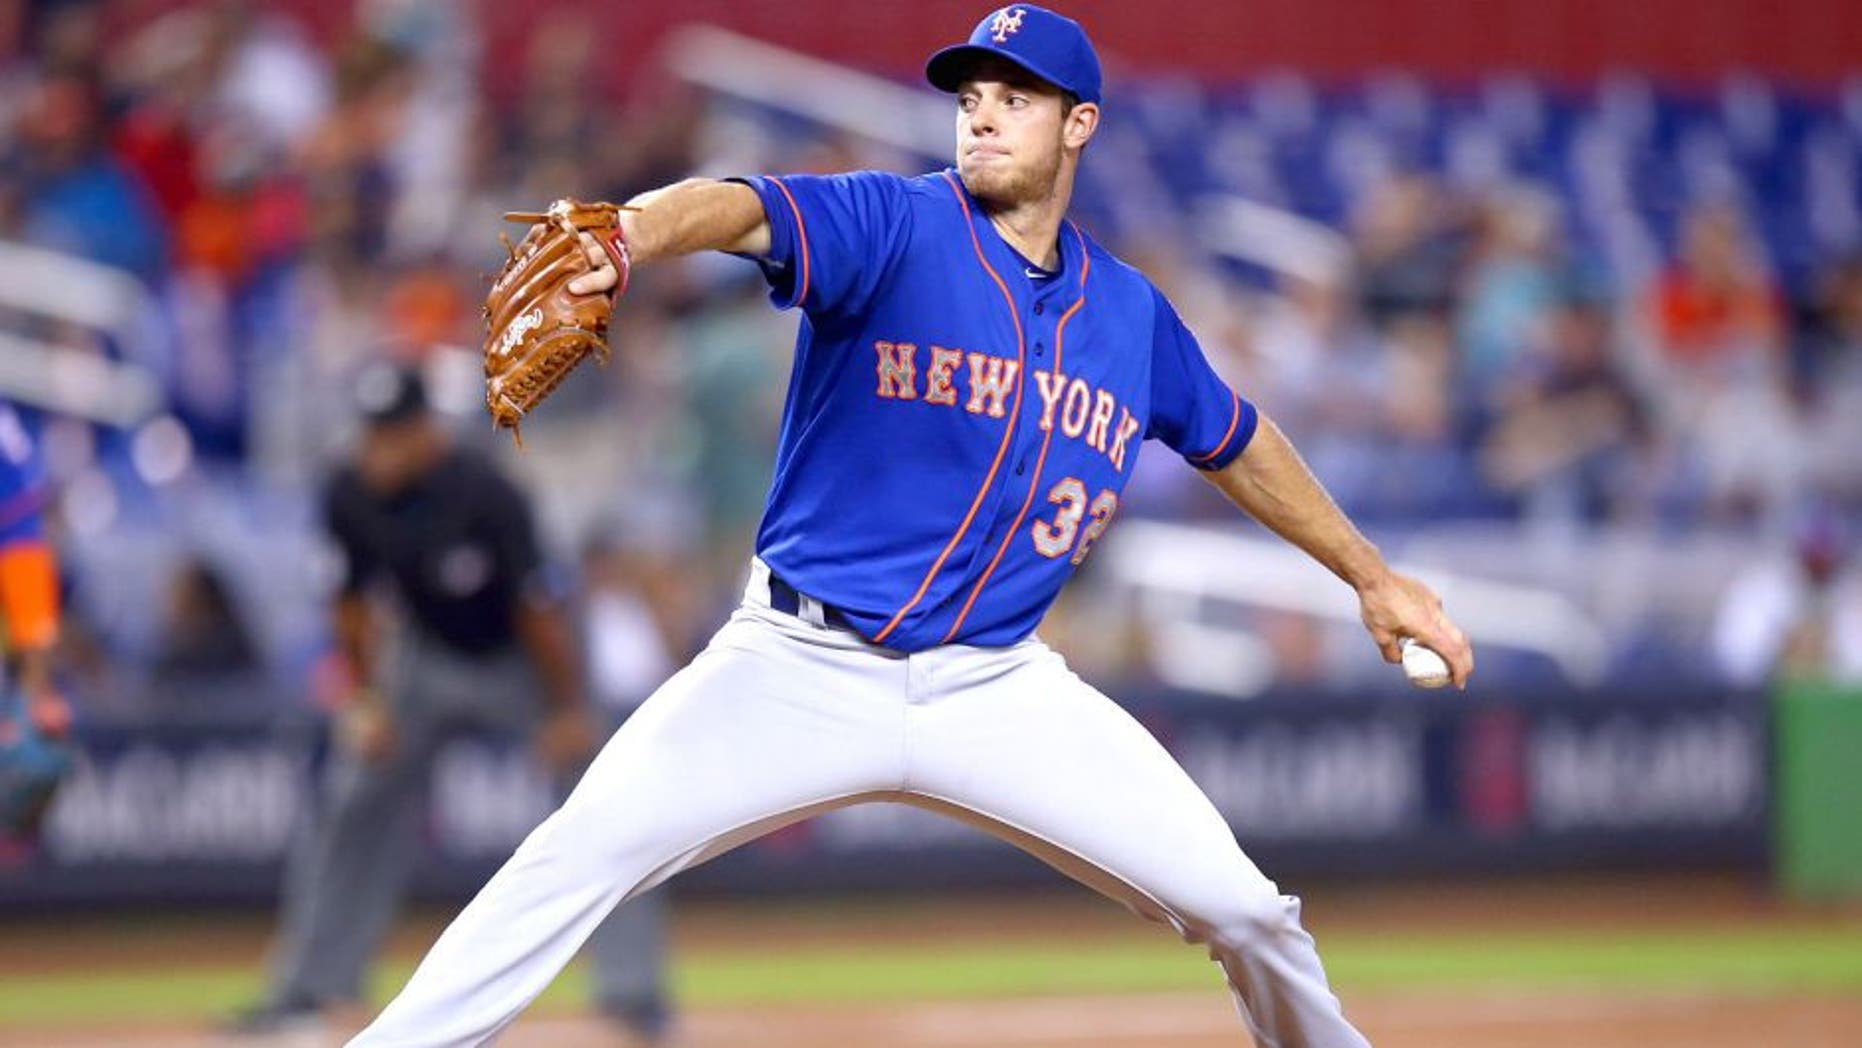 MIAMI, FL - SEPTEMBER 06: Steven Matz #32 of the New York Mets pitches during the game against the Miami Marlins at Marlins Park on September 6, 2015 in Miami, Florida. (Photo by Rob Foldy/Getty Images)